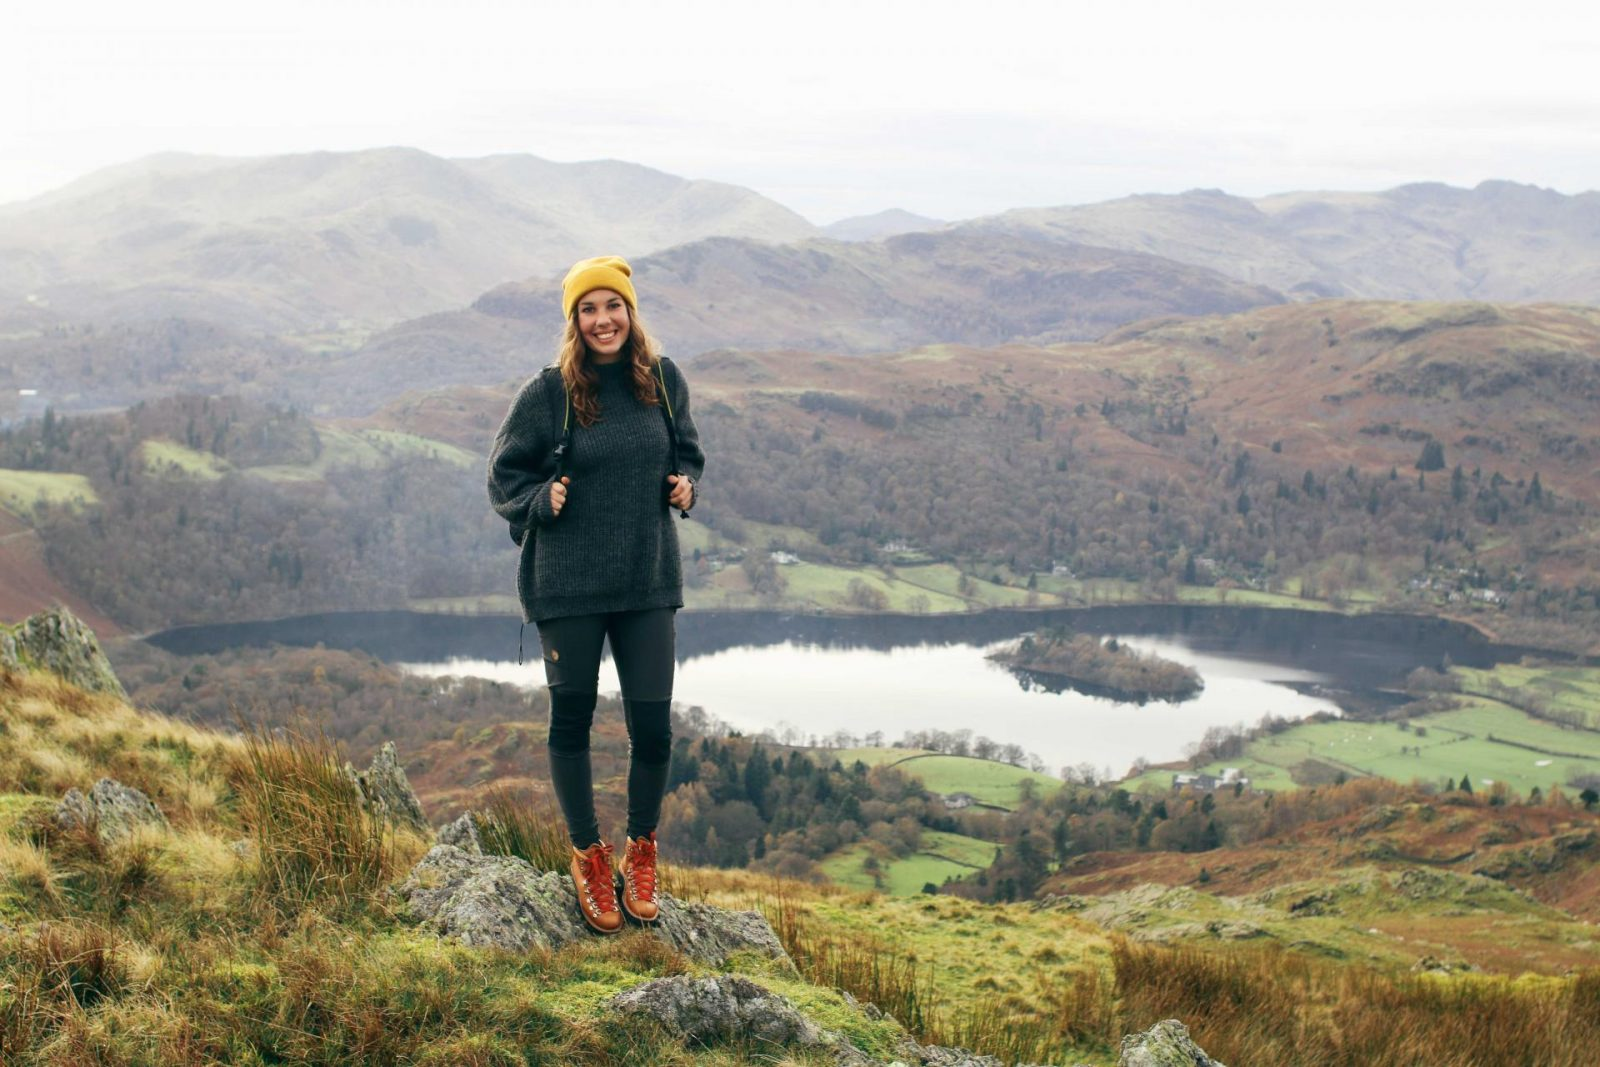 Top Adventure Travel Blogs - The Girl Outdoors